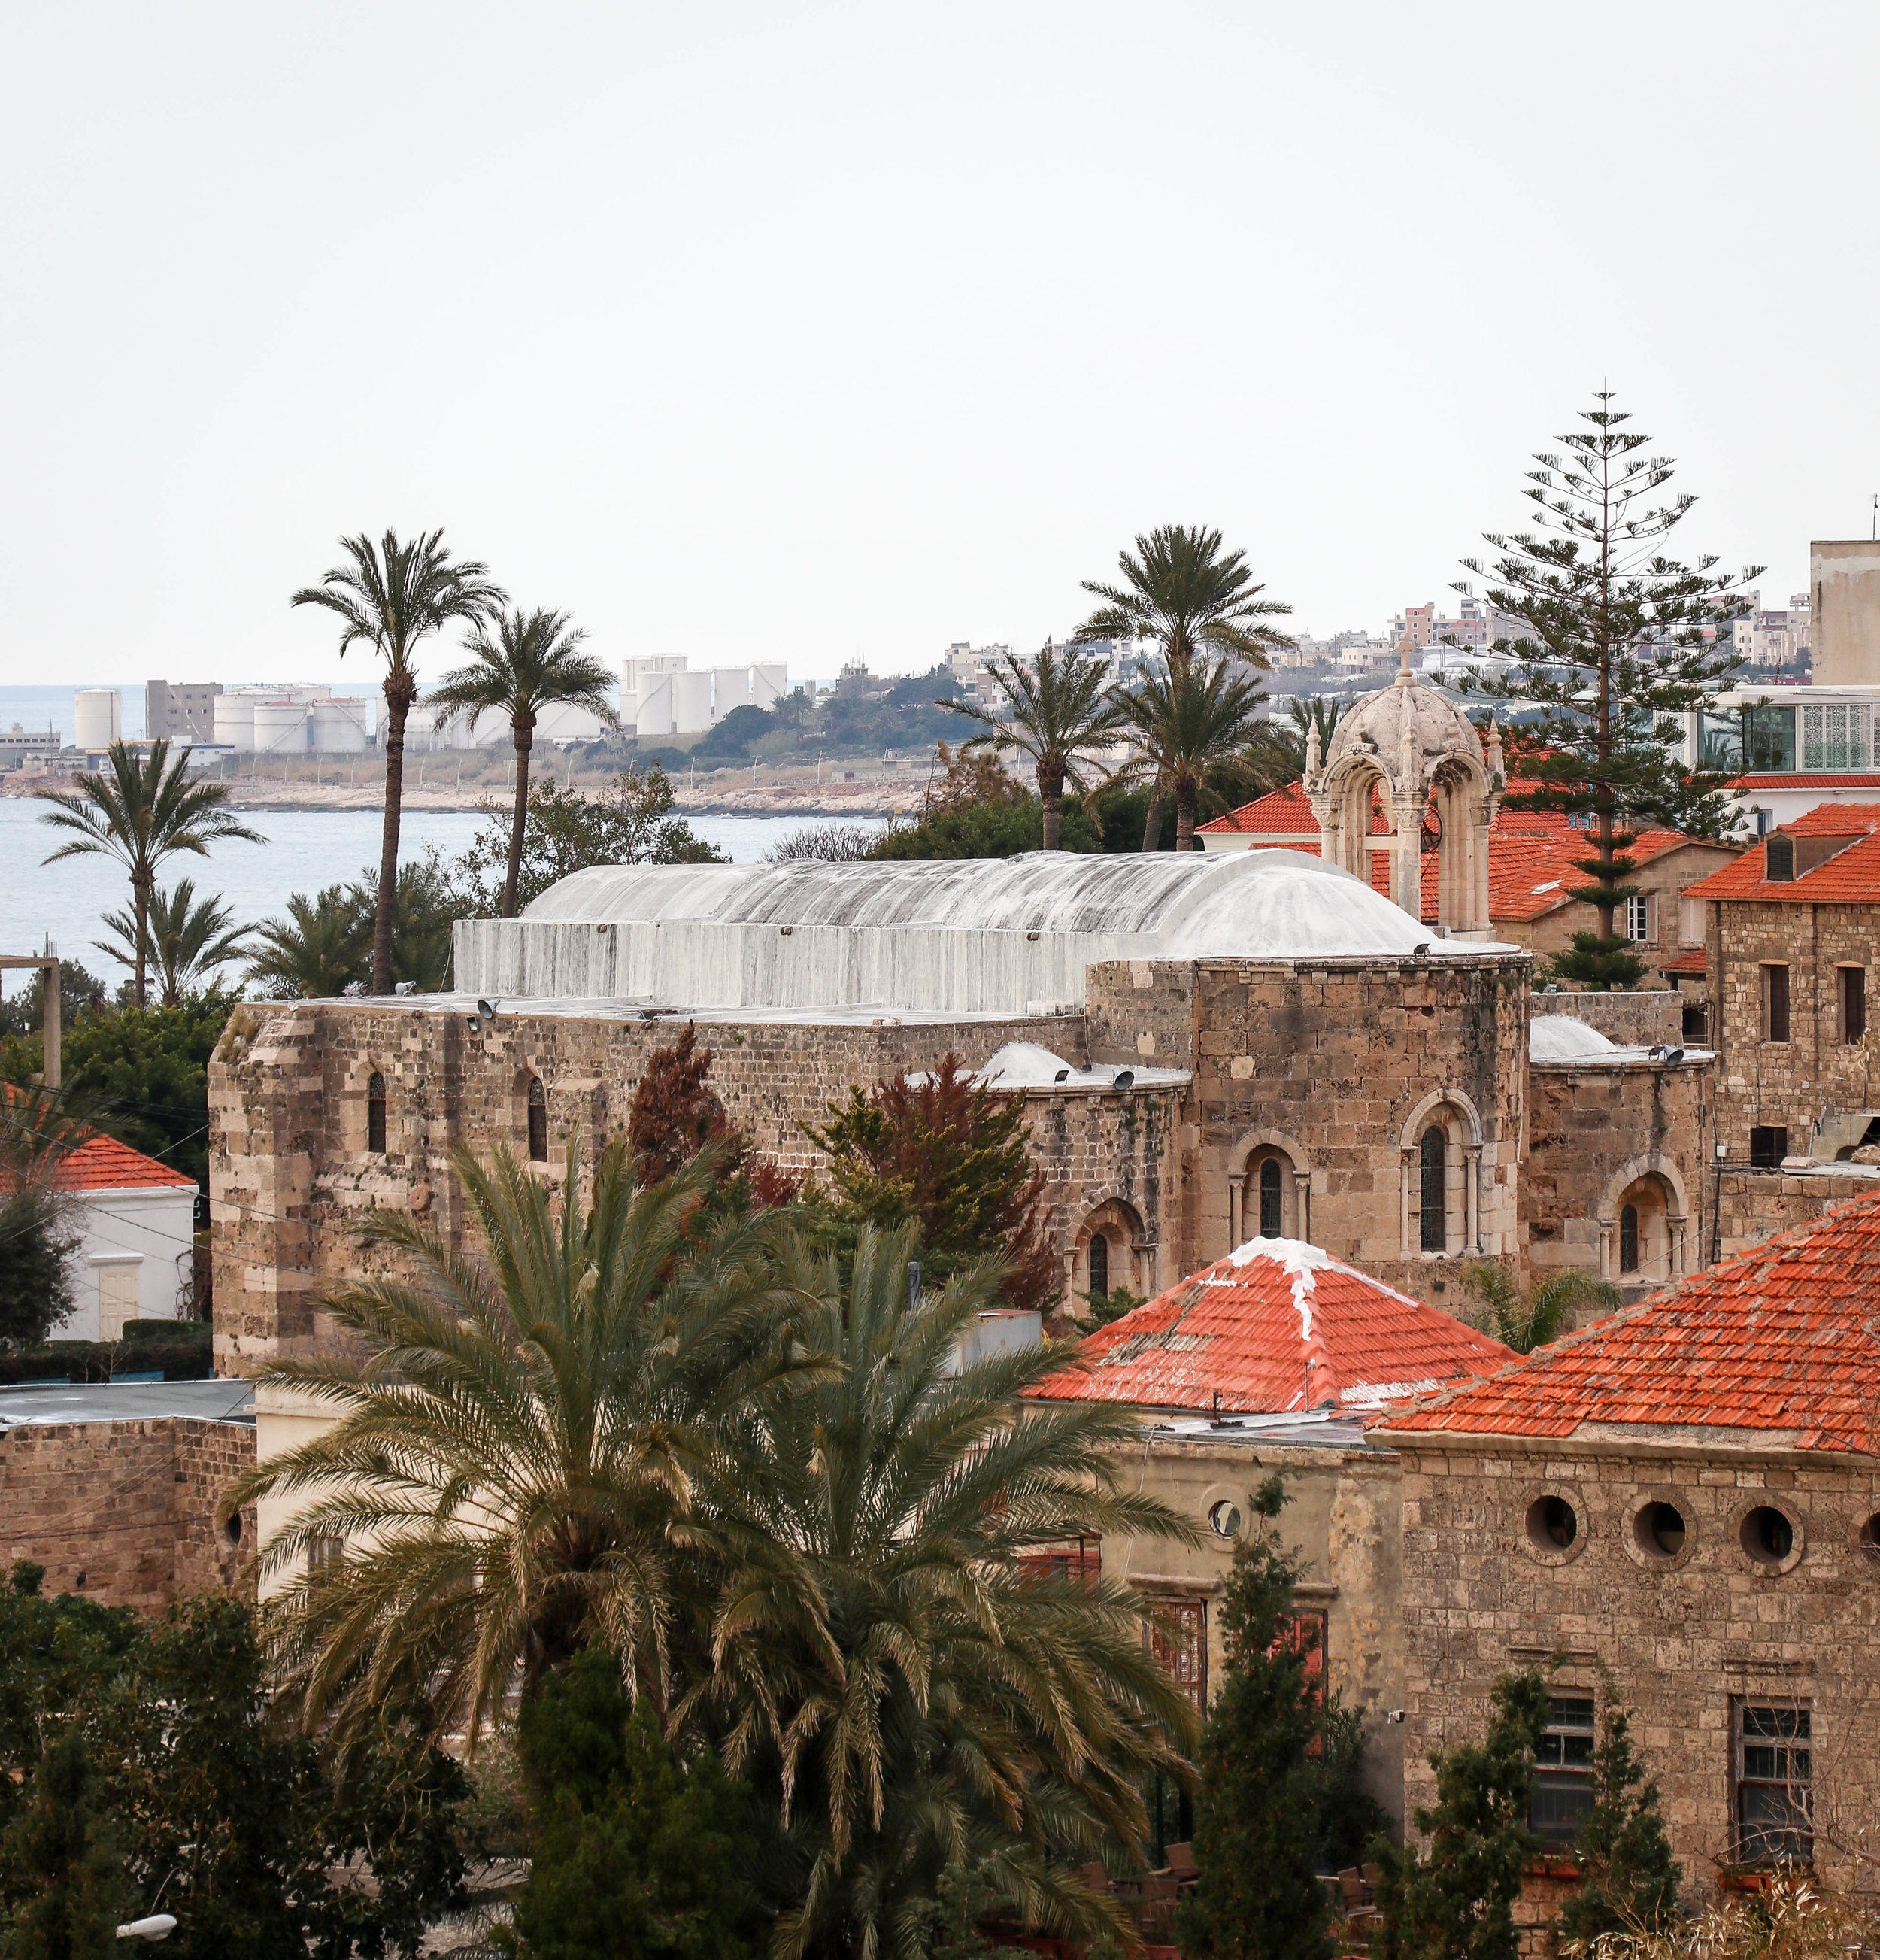 The view from Byblos, Lebanon